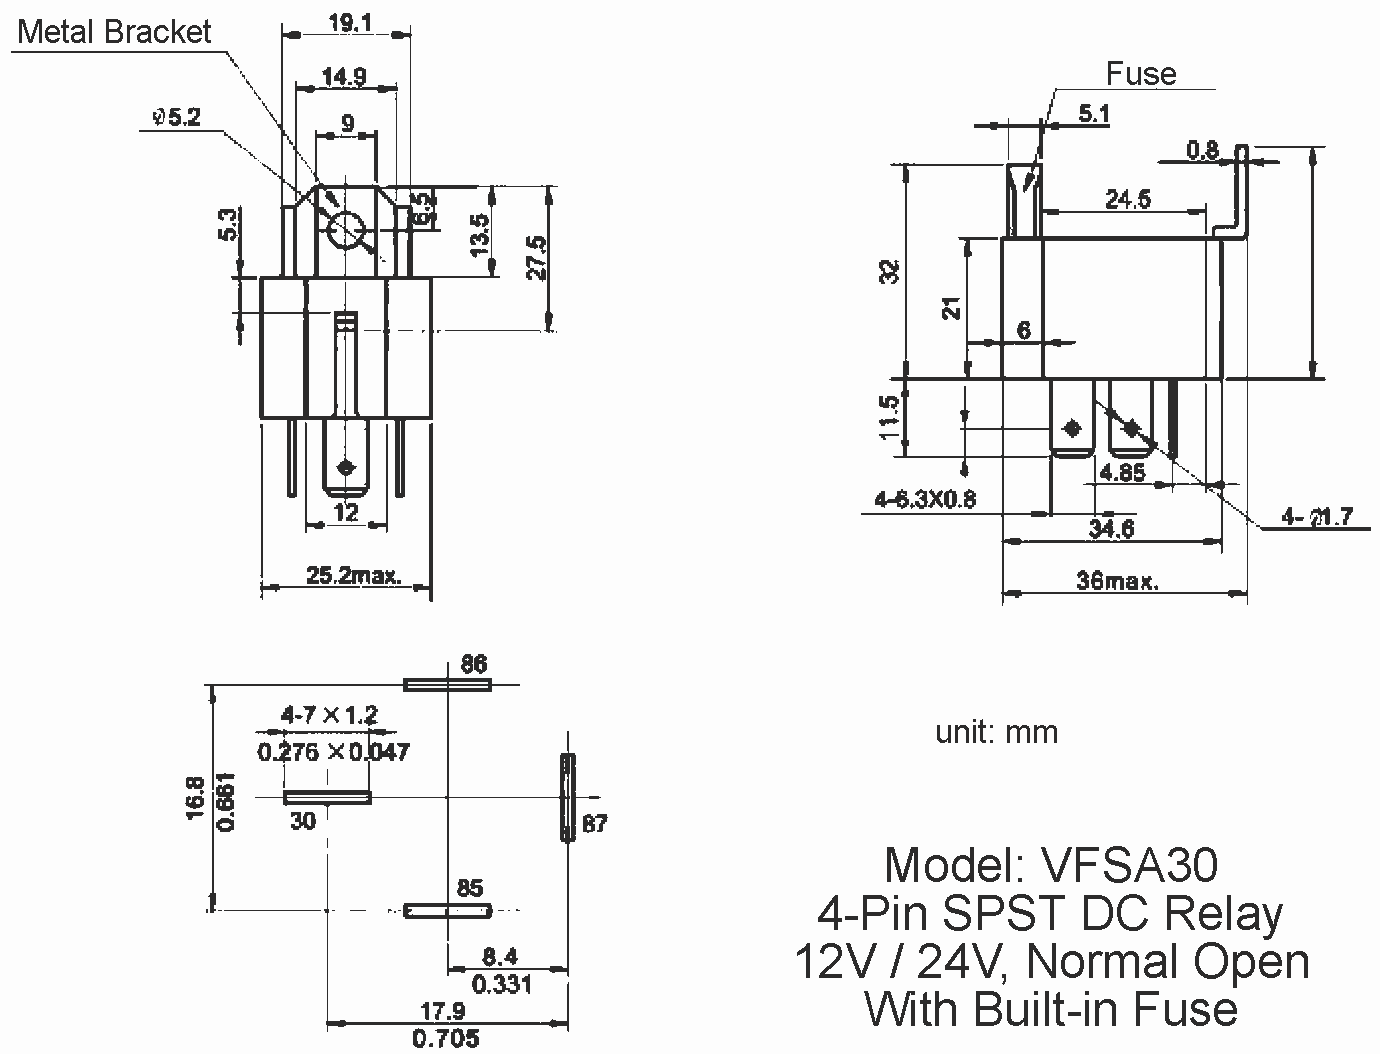 12v    24v automotive dc relay with 30a fuse  model vfsa30  4